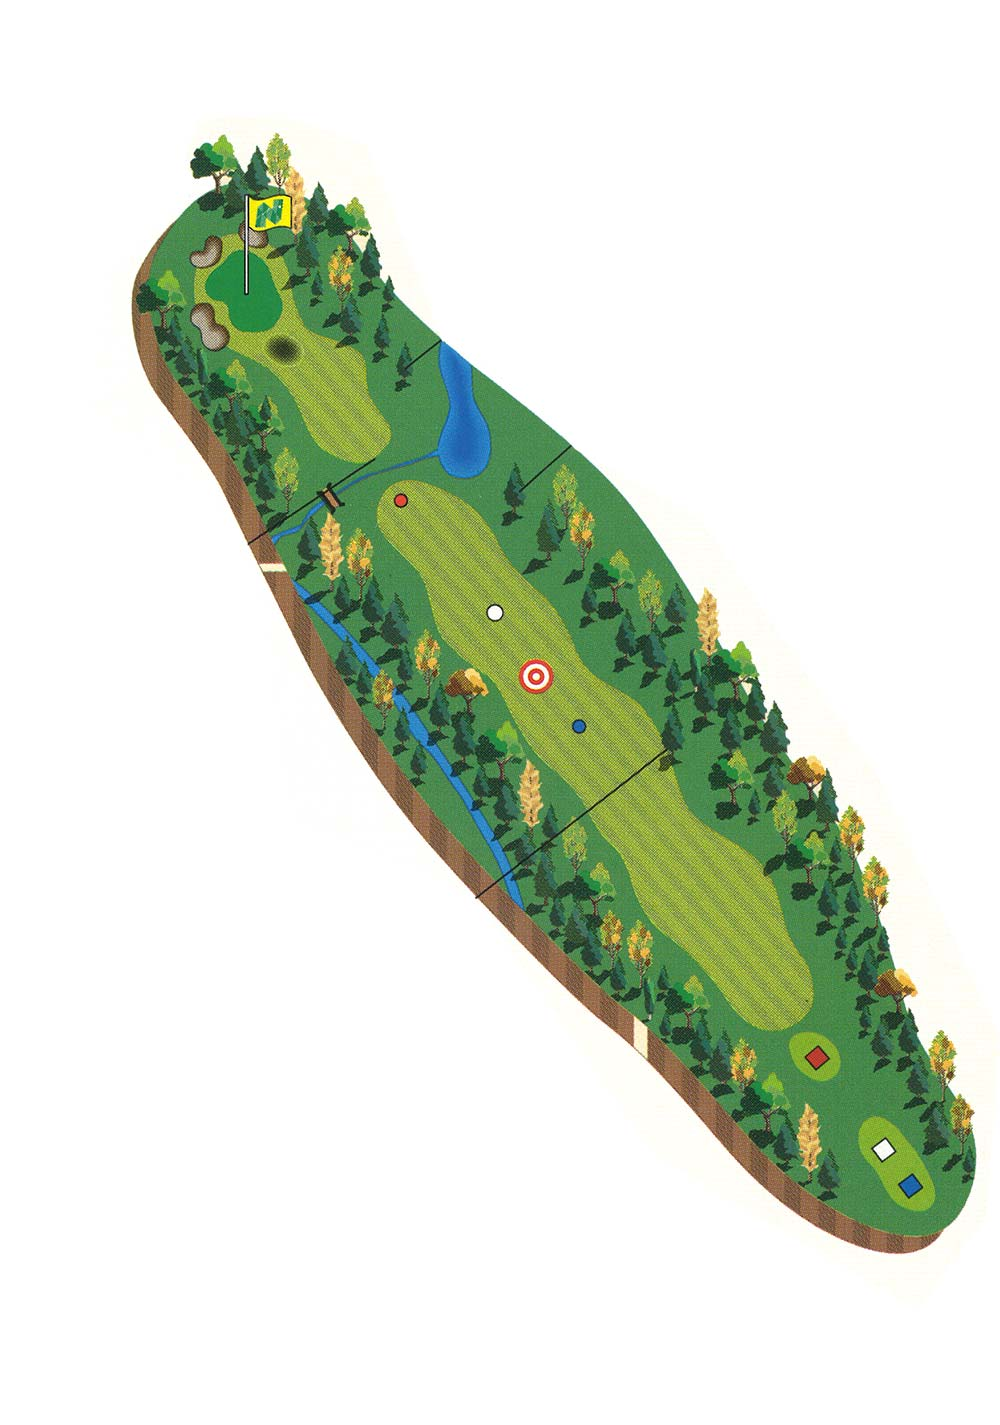 NS Course Description - Hole 14